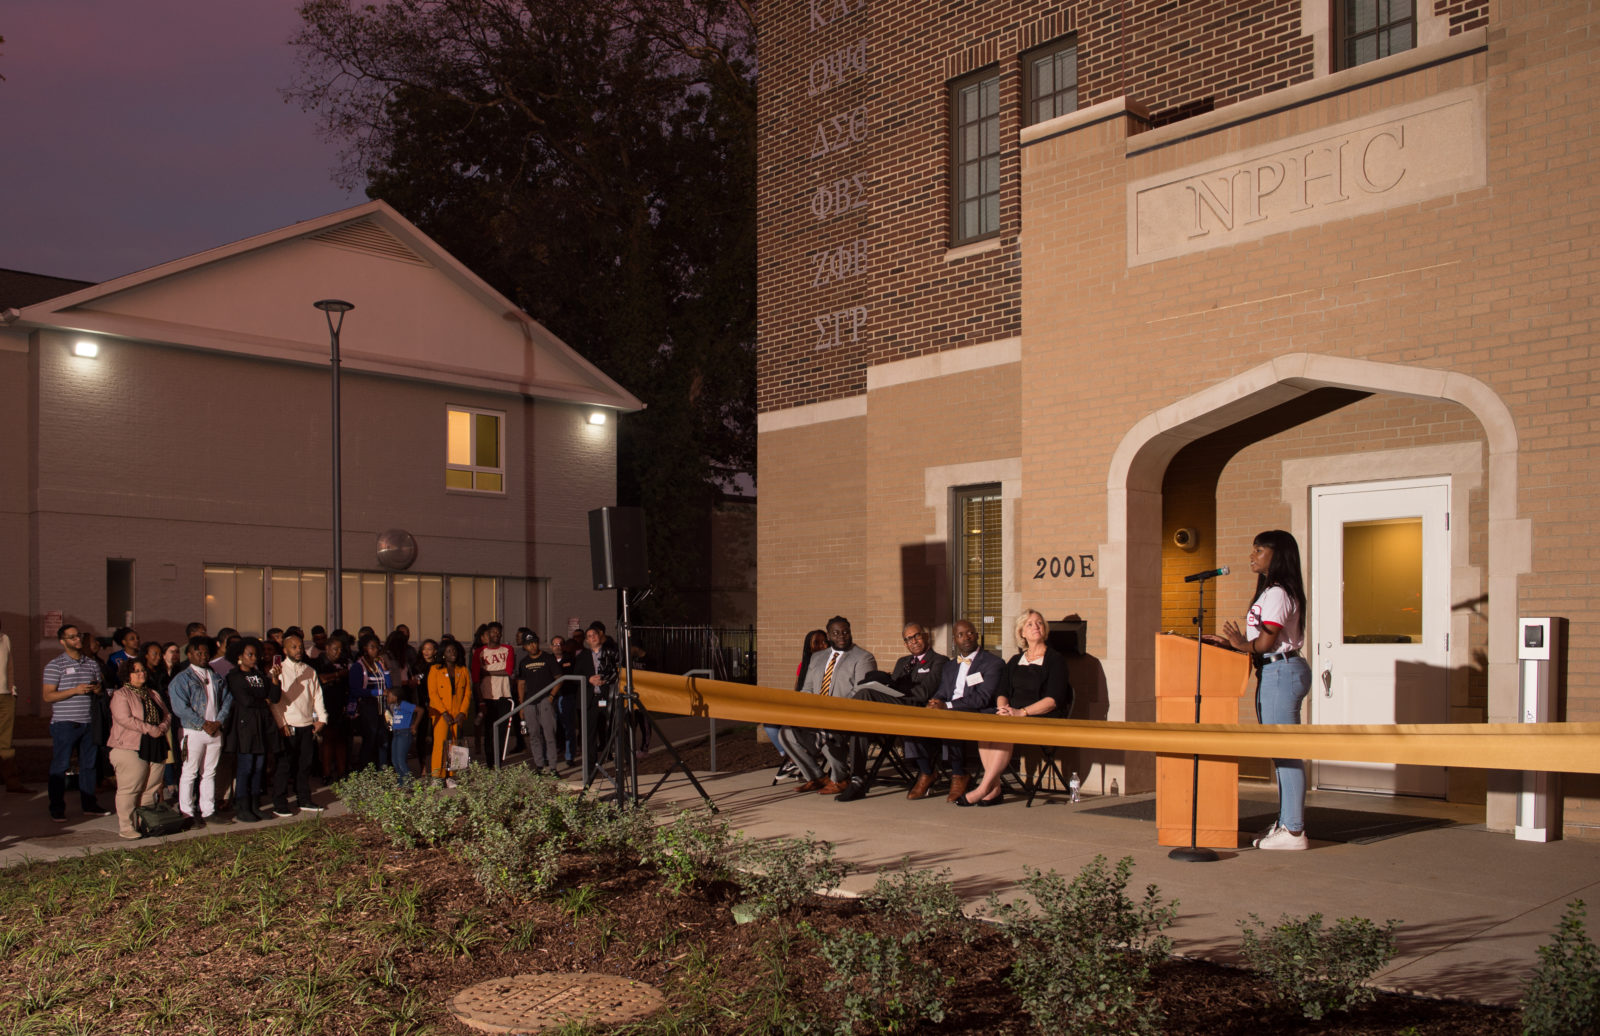 NPHC President Gabrielle Dyson speaking at the National Pan-Hellenic Council House house ribbon-cutting at Vanderbilt University on Oct. 18, 2019. (Price Chambers for Vanderbilt University)